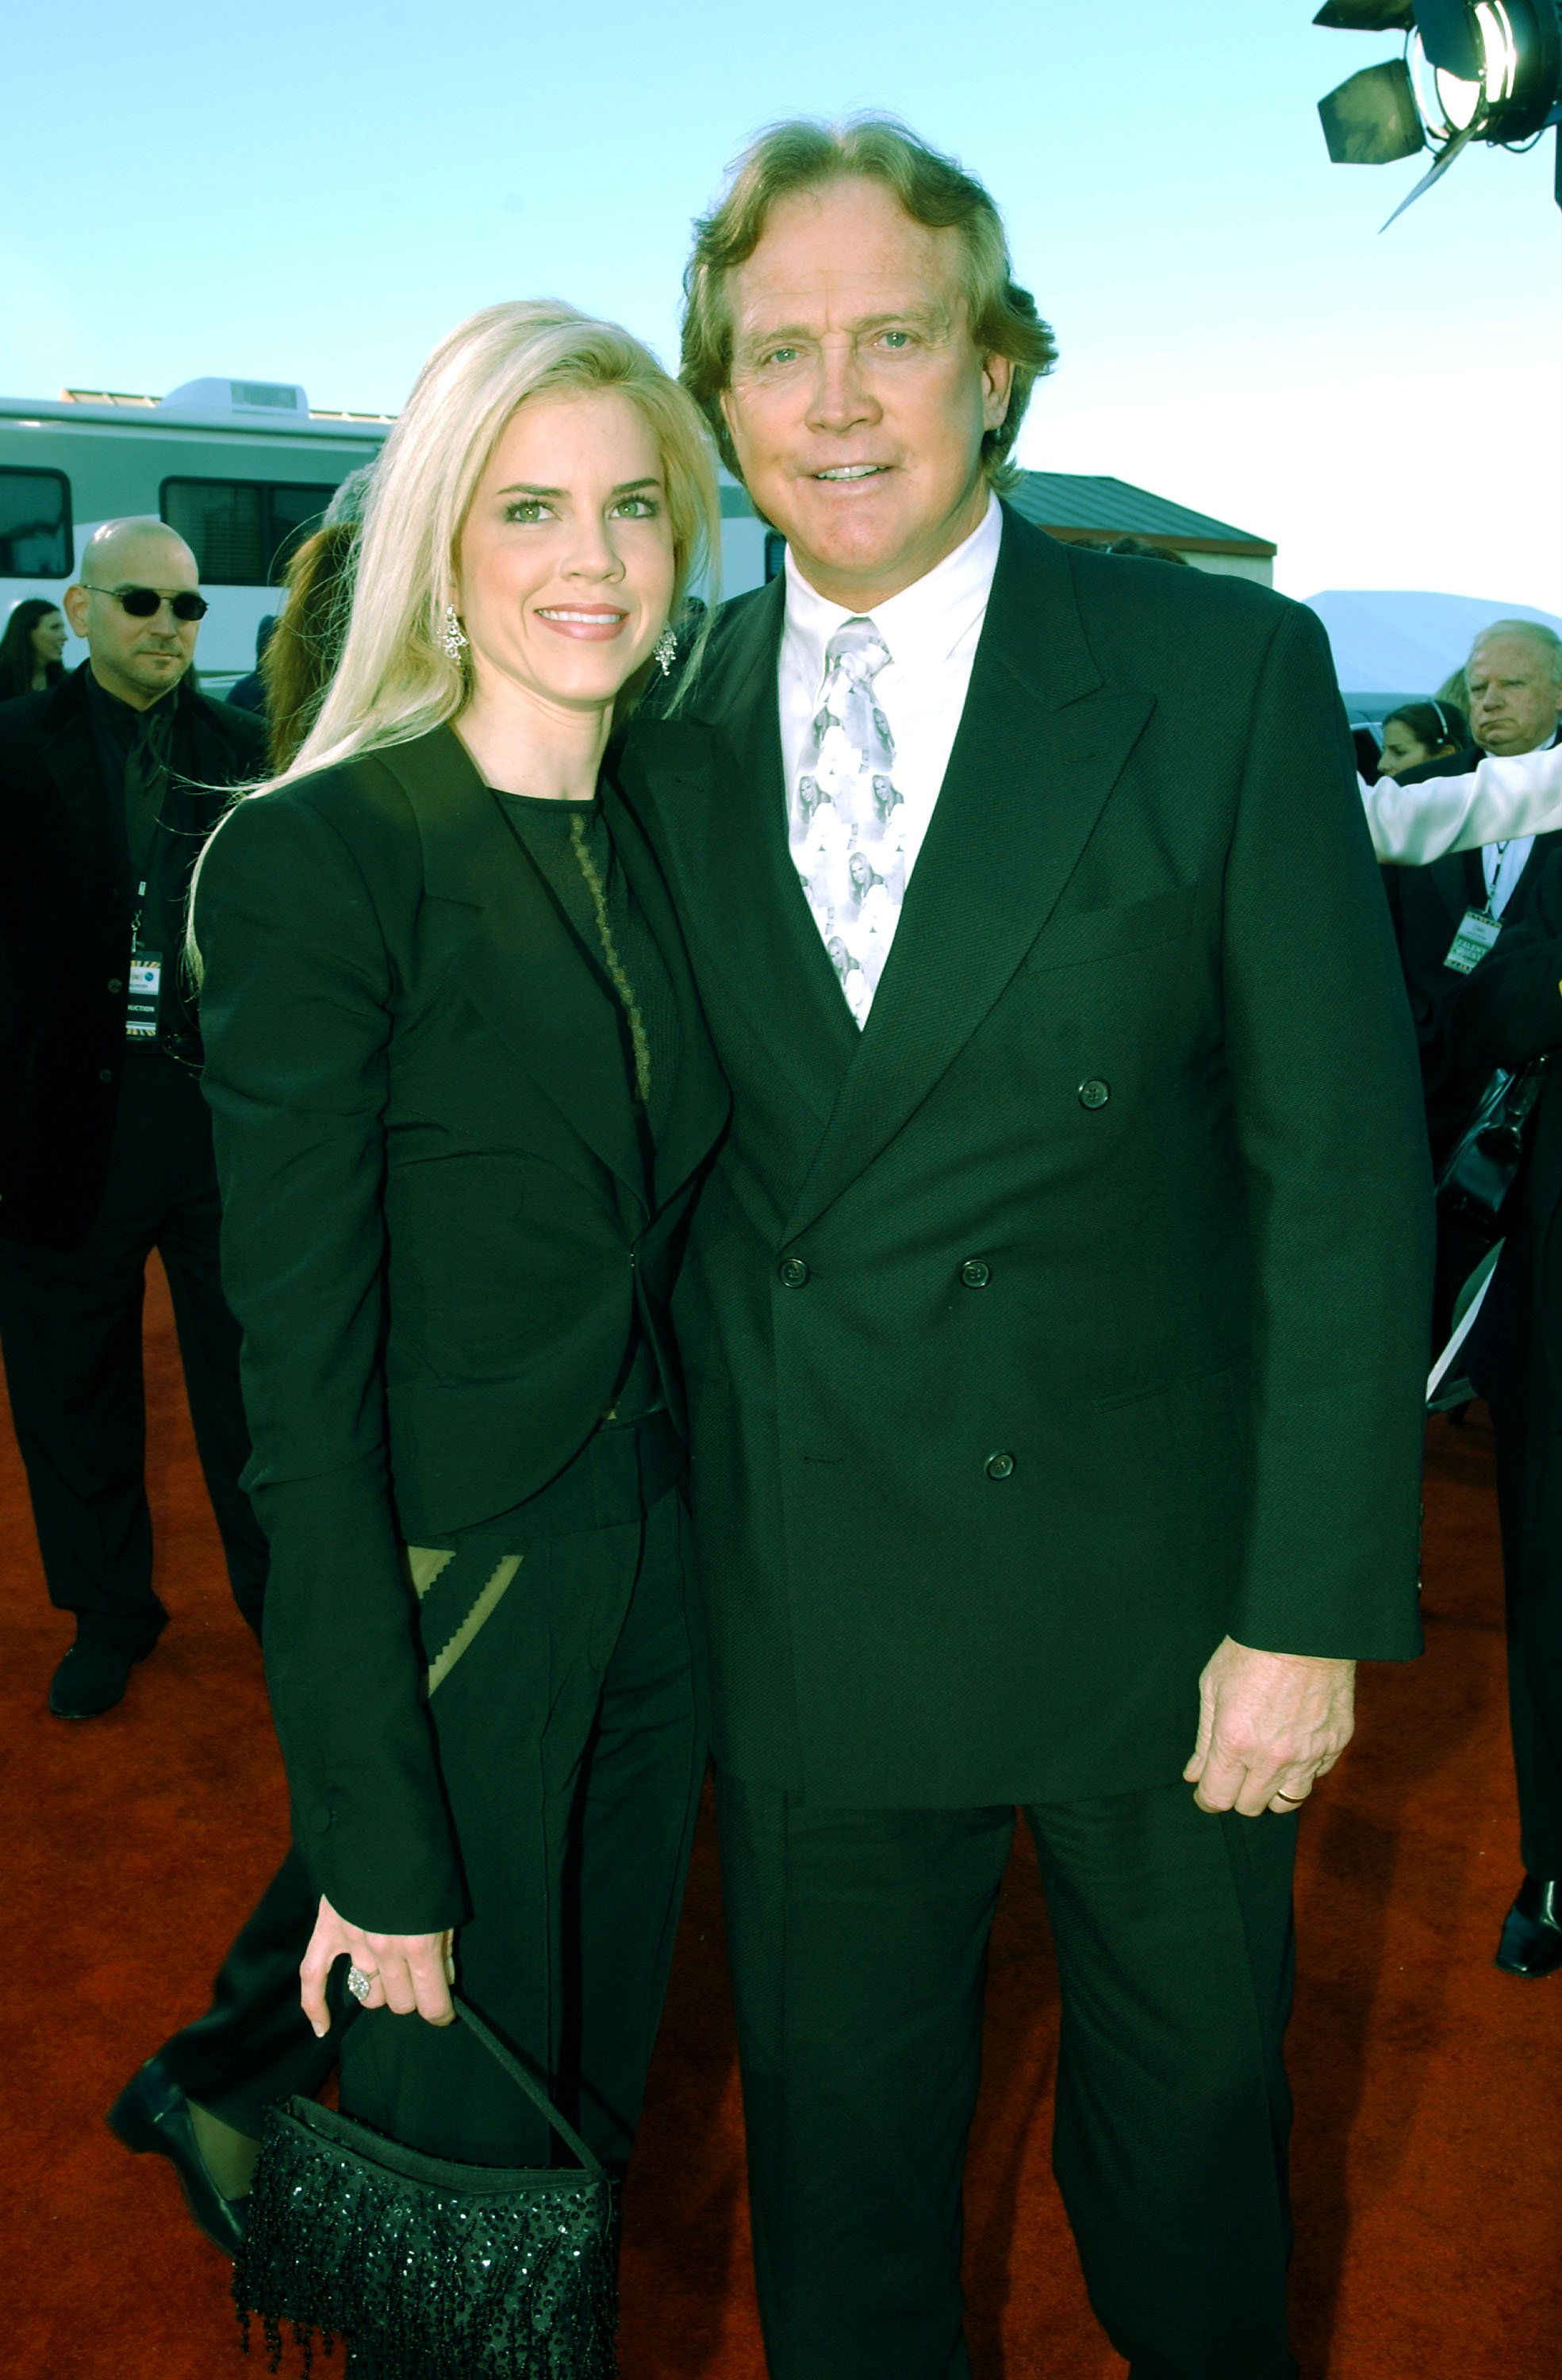 ee Majors and his wife Faith attend the TV Land Awards 2003 at the Hollywood Palladium on March 2, 2003.   Photo: GettyImages